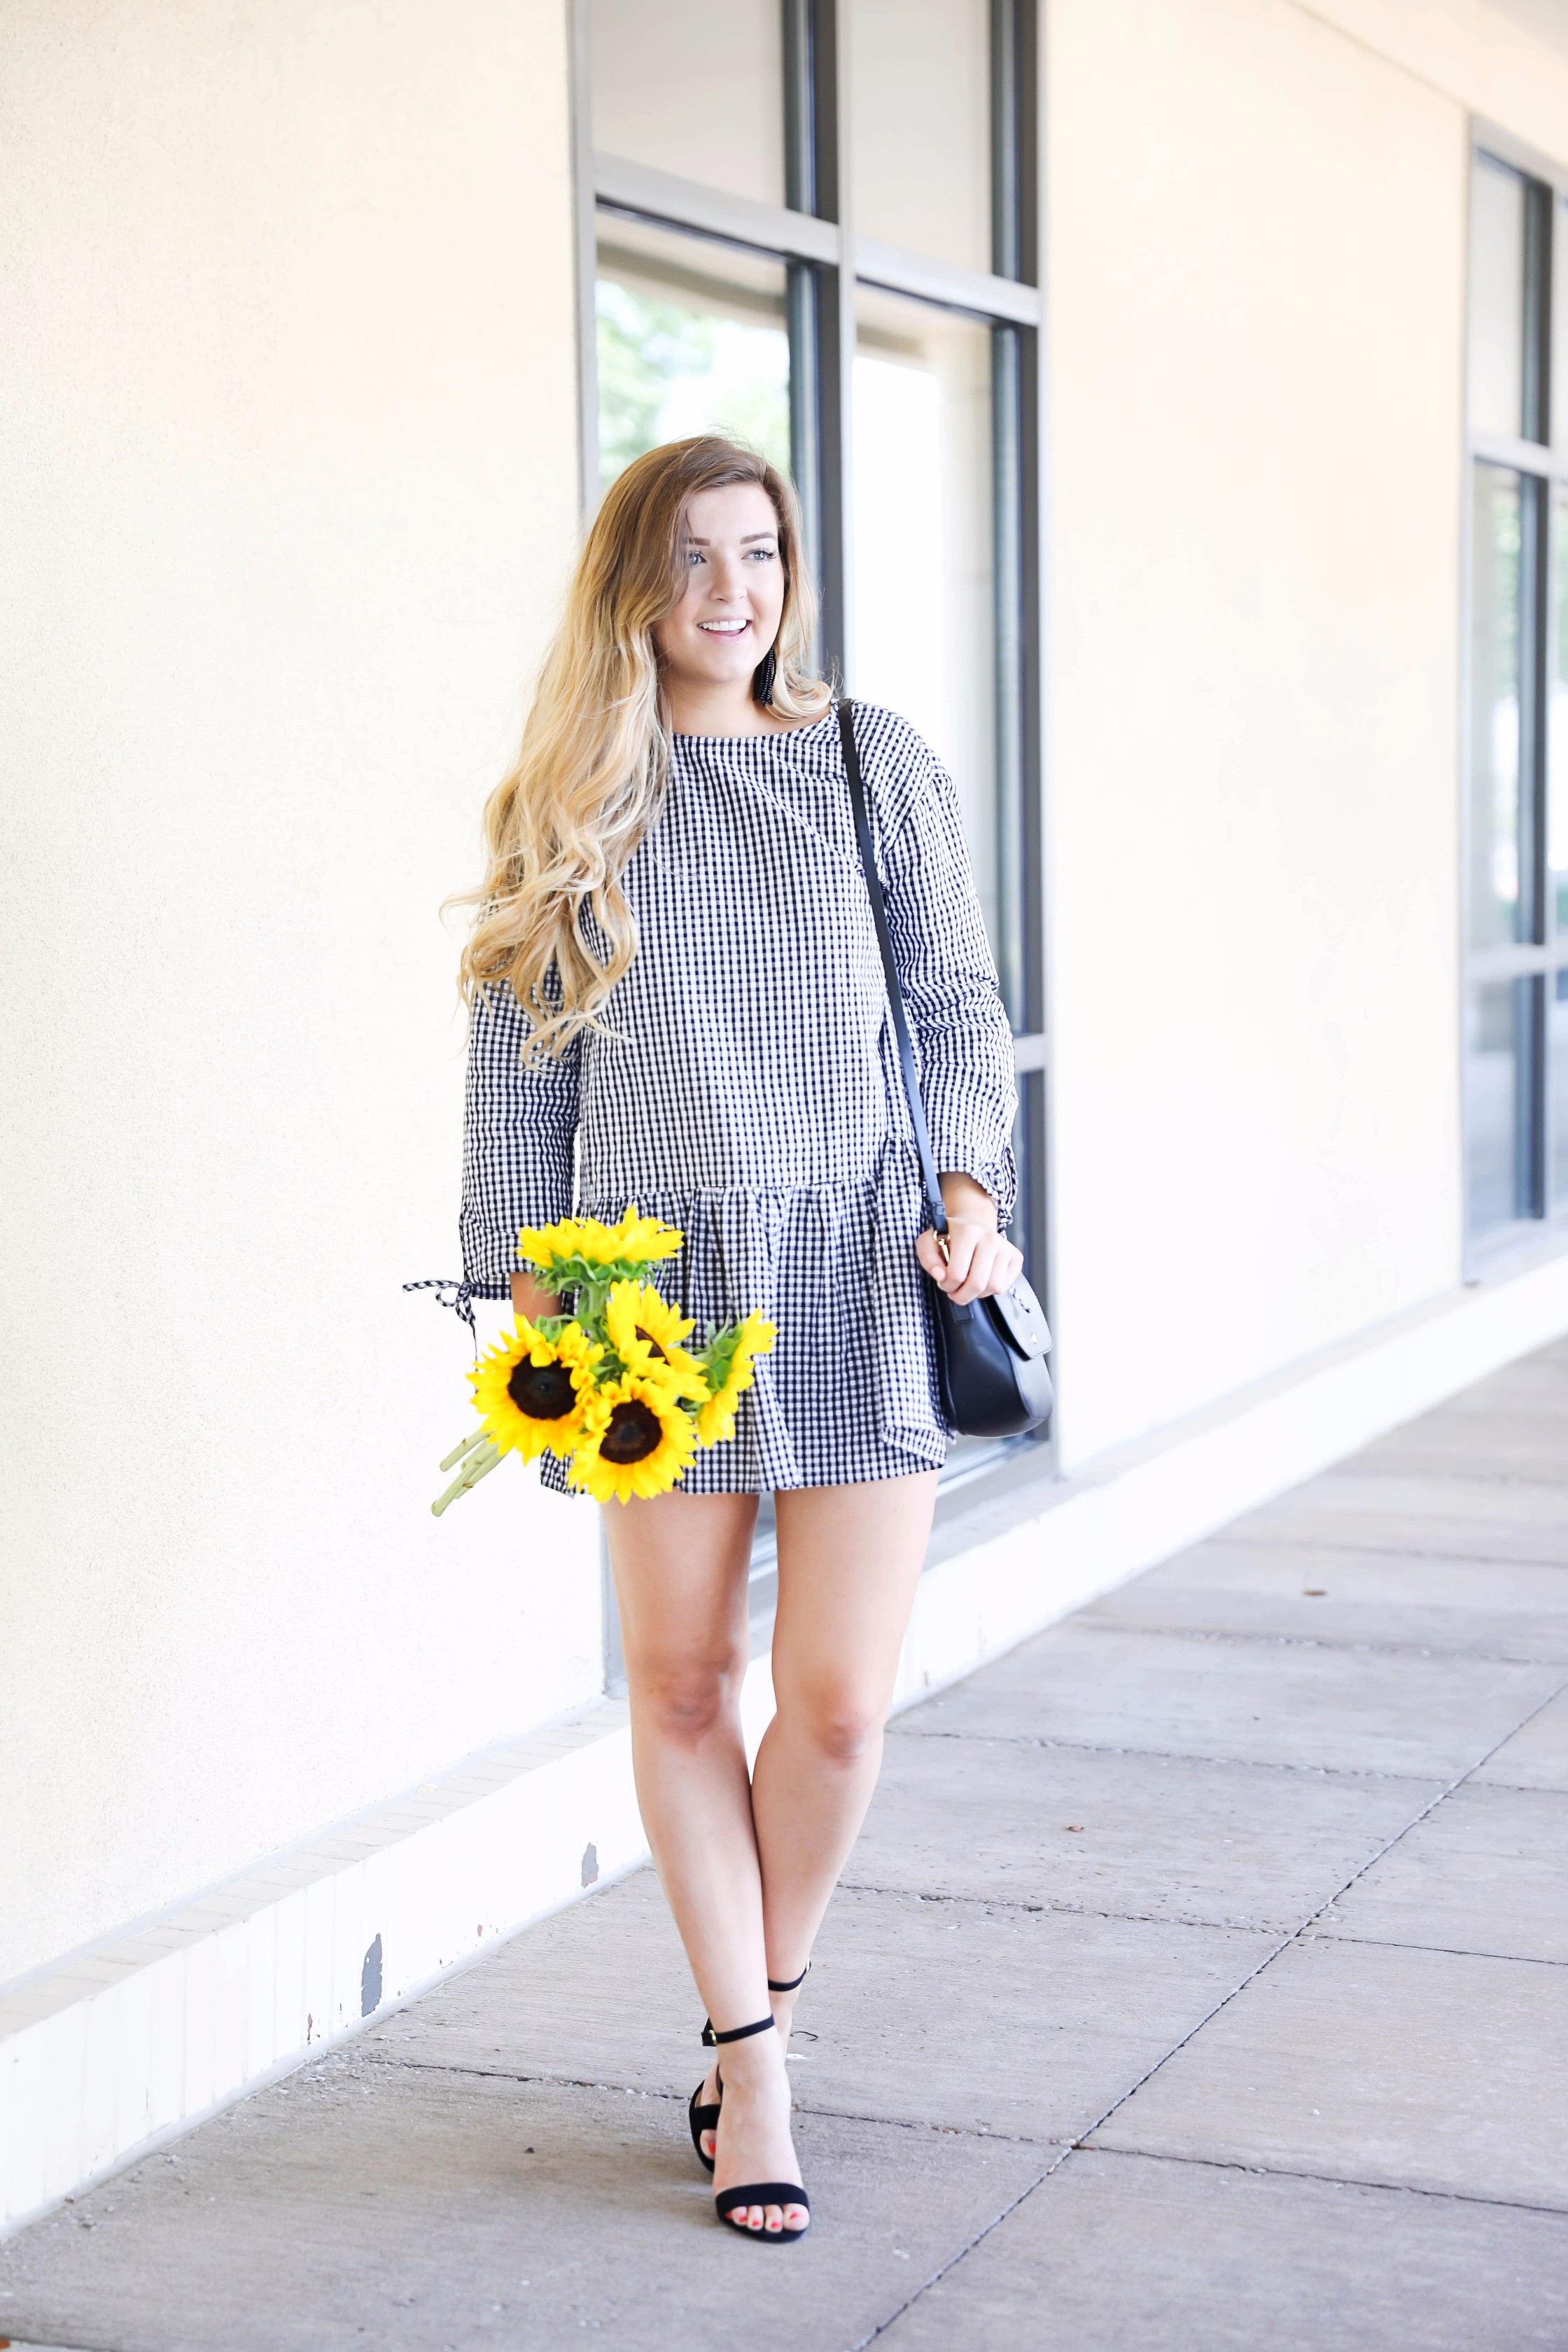 Sunflowers and gingham! The cutest low waist dress for summer transiting into fall. I can't get enough of this cute gingham dress! More details on fashion blog daily dose of charm by lauren lindmark